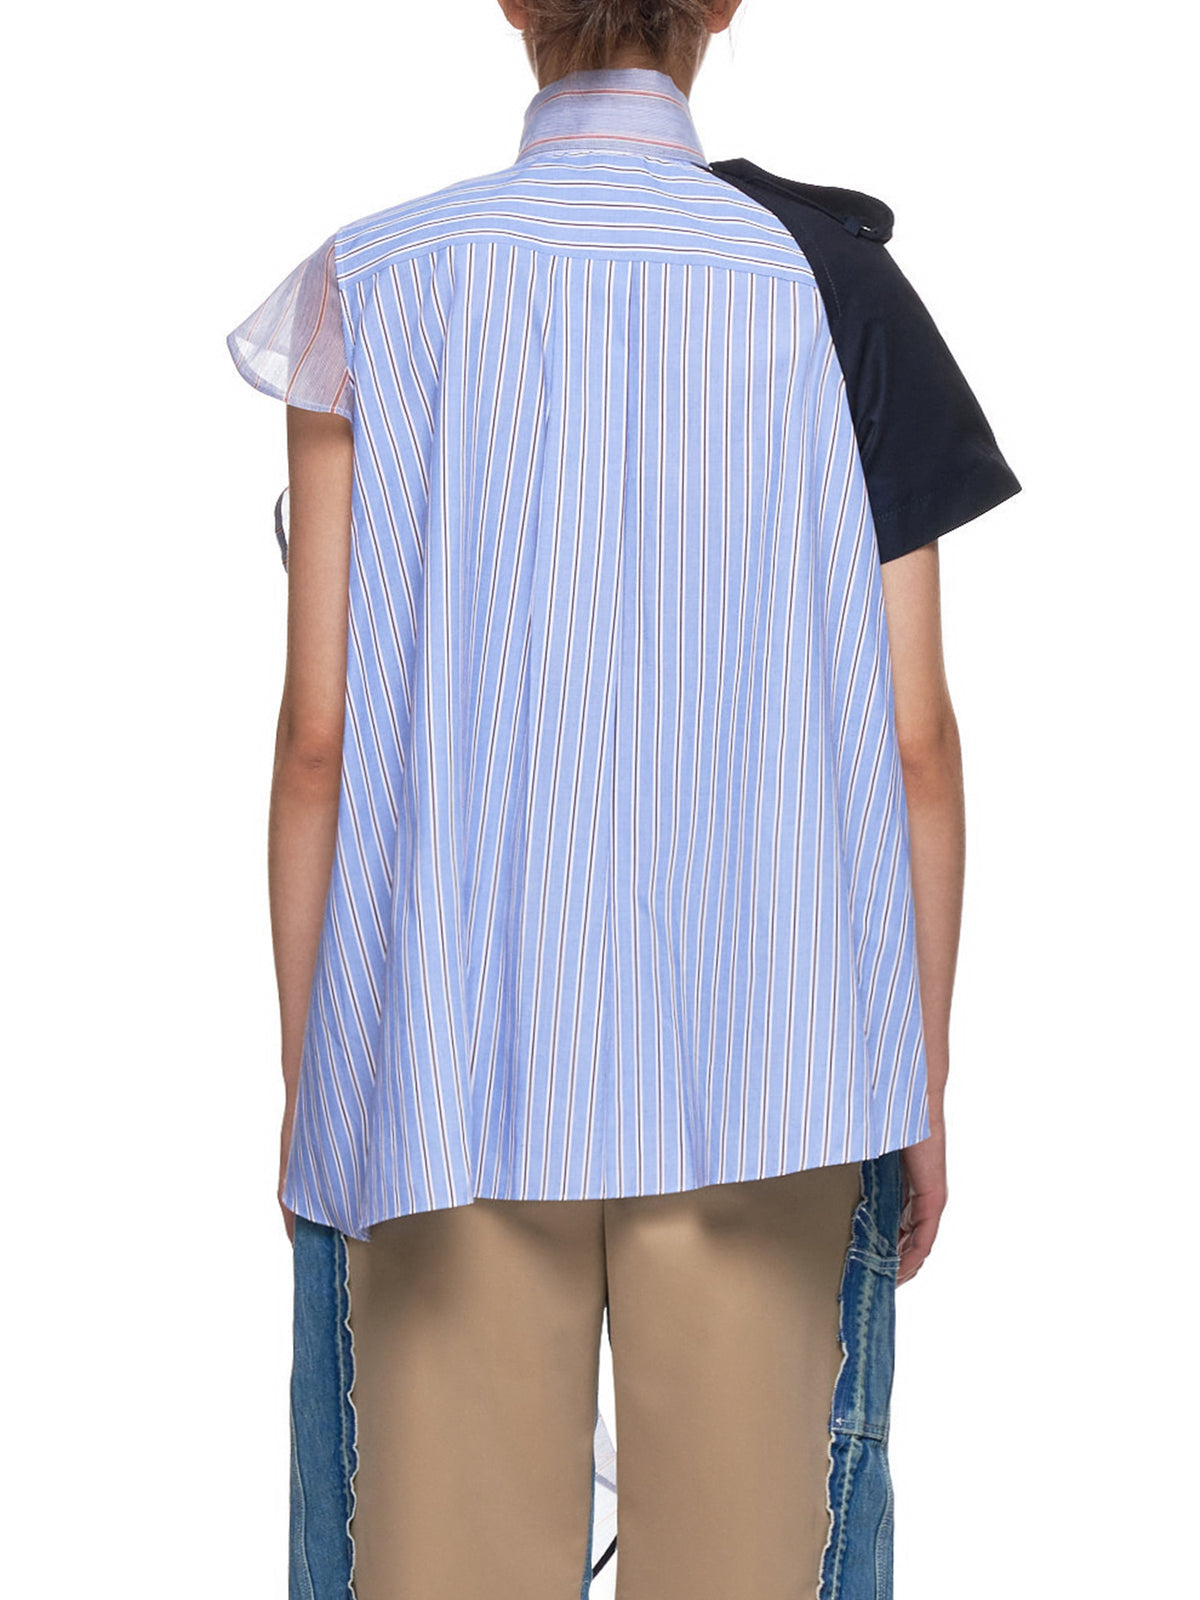 Layered Shirt (19-04492-BLUE)